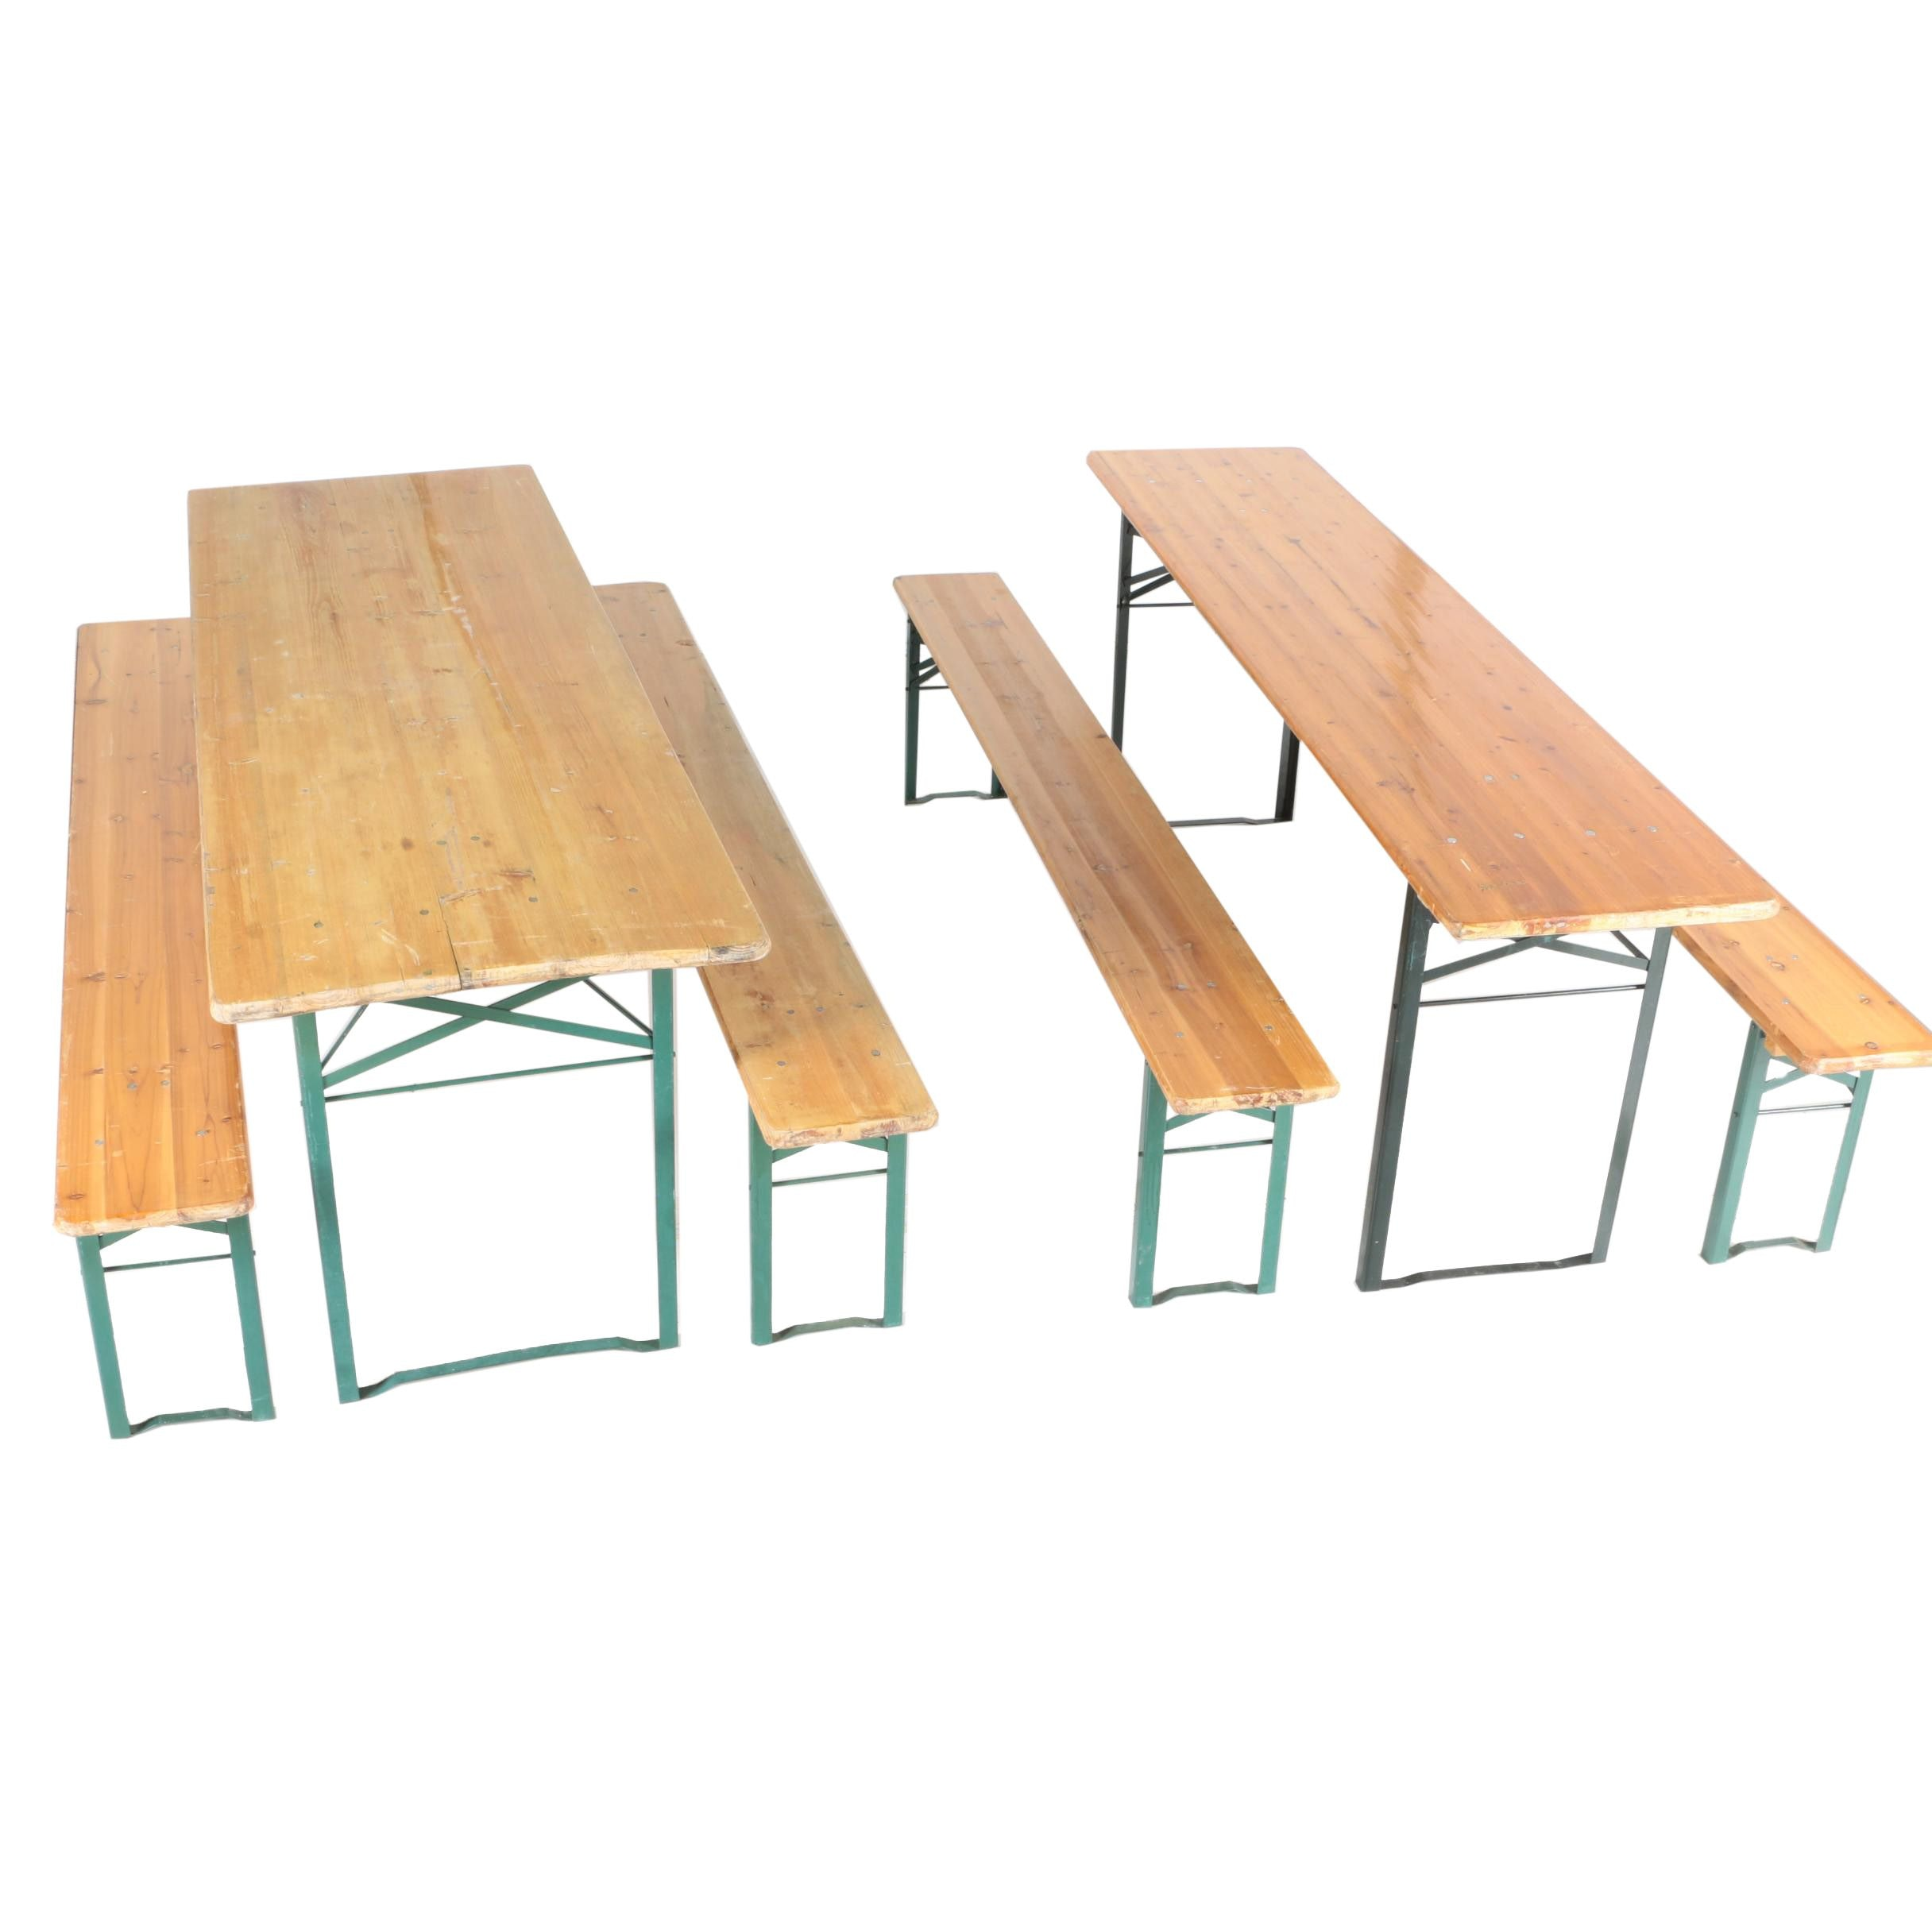 German Oktoberfest / Beer Fest Folding Tables and Benches